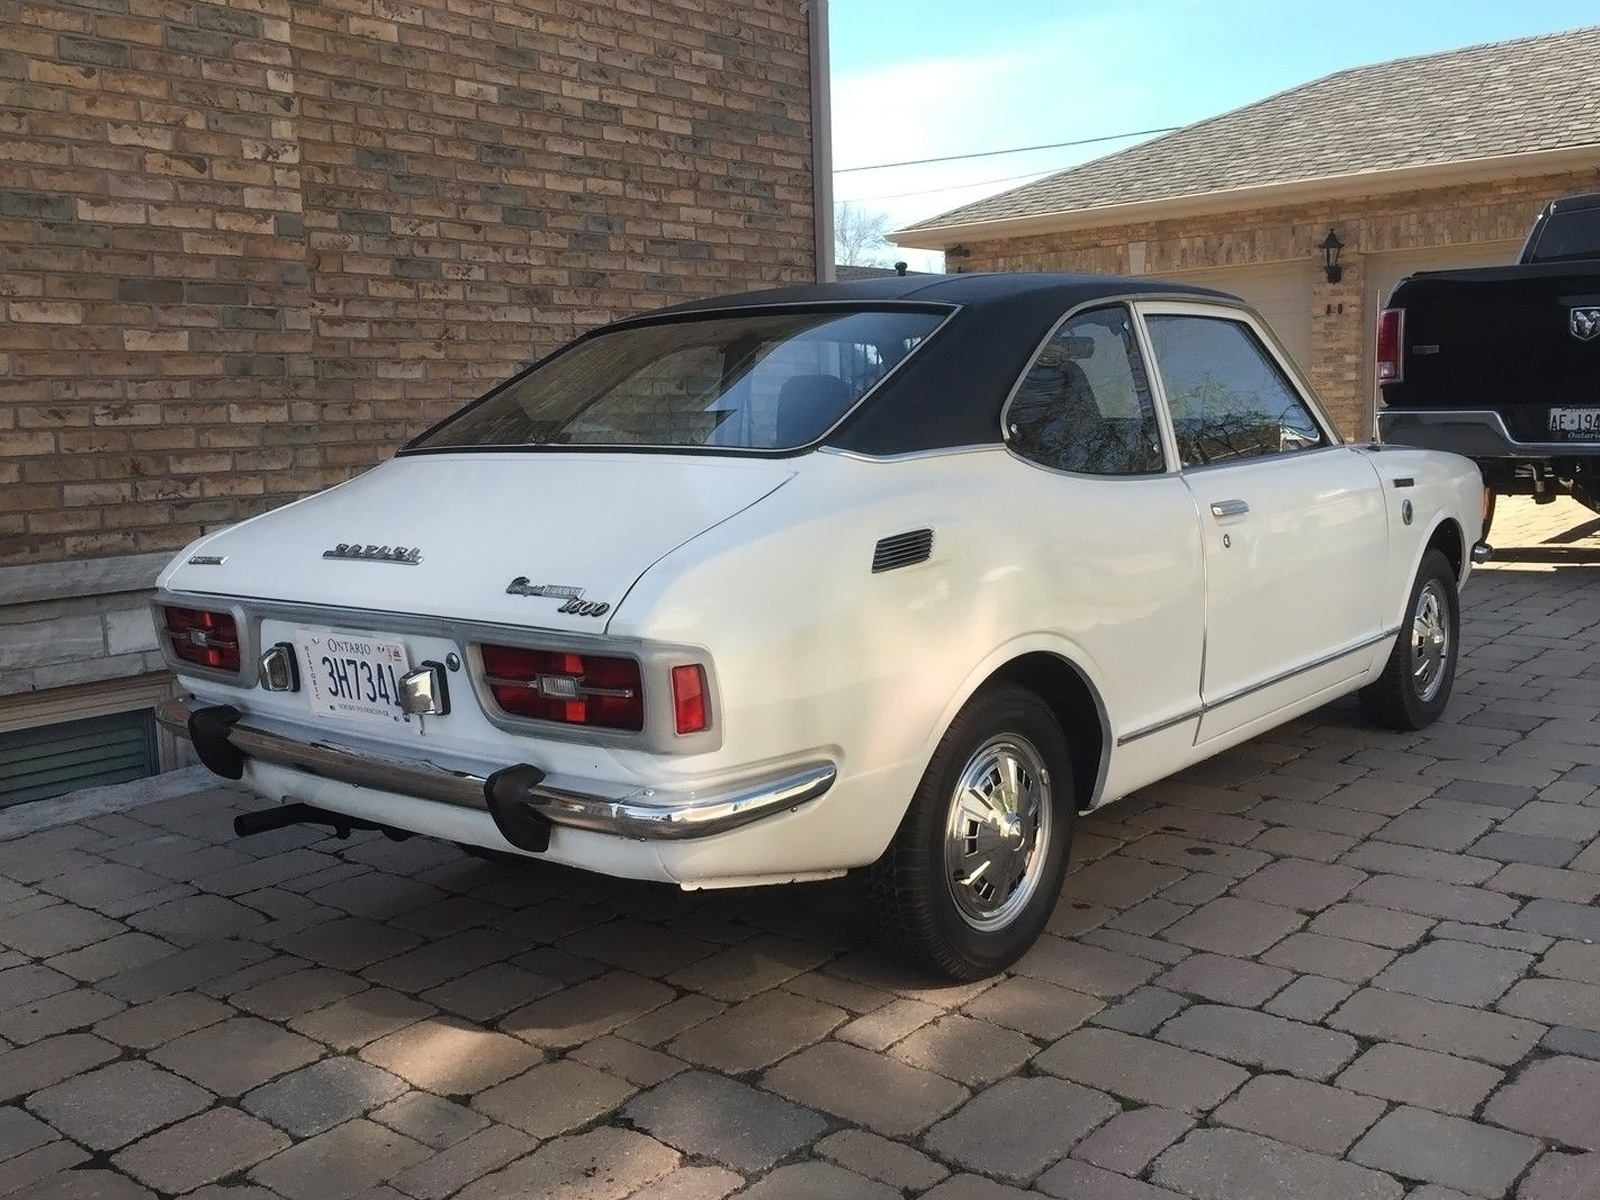 Ff A Ab Z in addition Gt together with Sprinter Coupe as well Corolla Hardtop further Autowp Ru Toyota Crown Royal Saloon Door Hardtop. on 1971 toyota corolla deluxe wagon